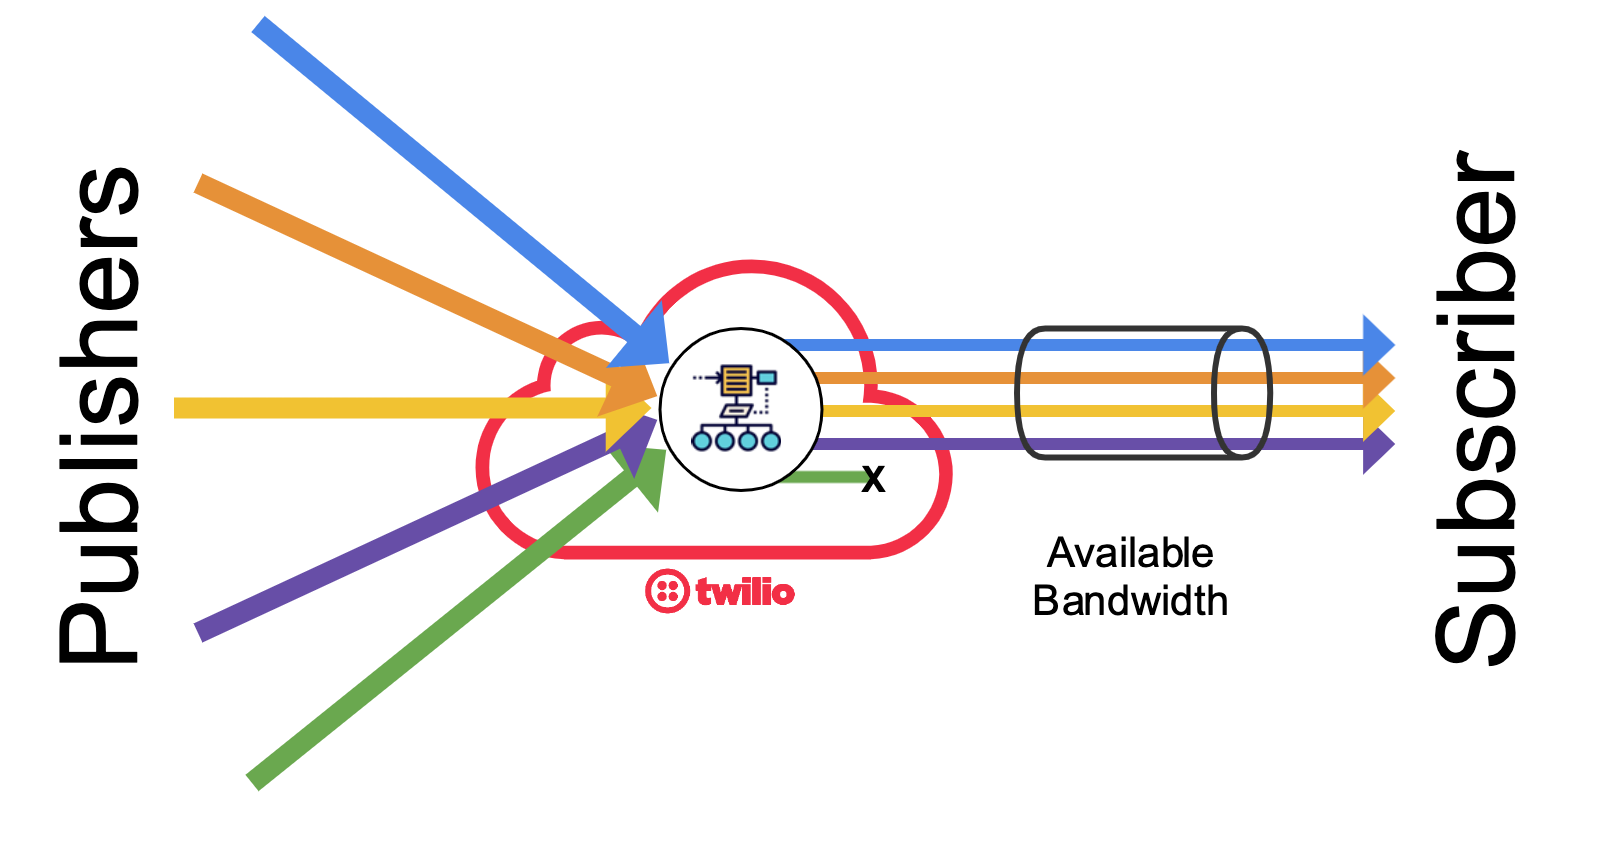 Twilio bandwidth allocation algorithms may completely switch-off the less relevant video tracks.